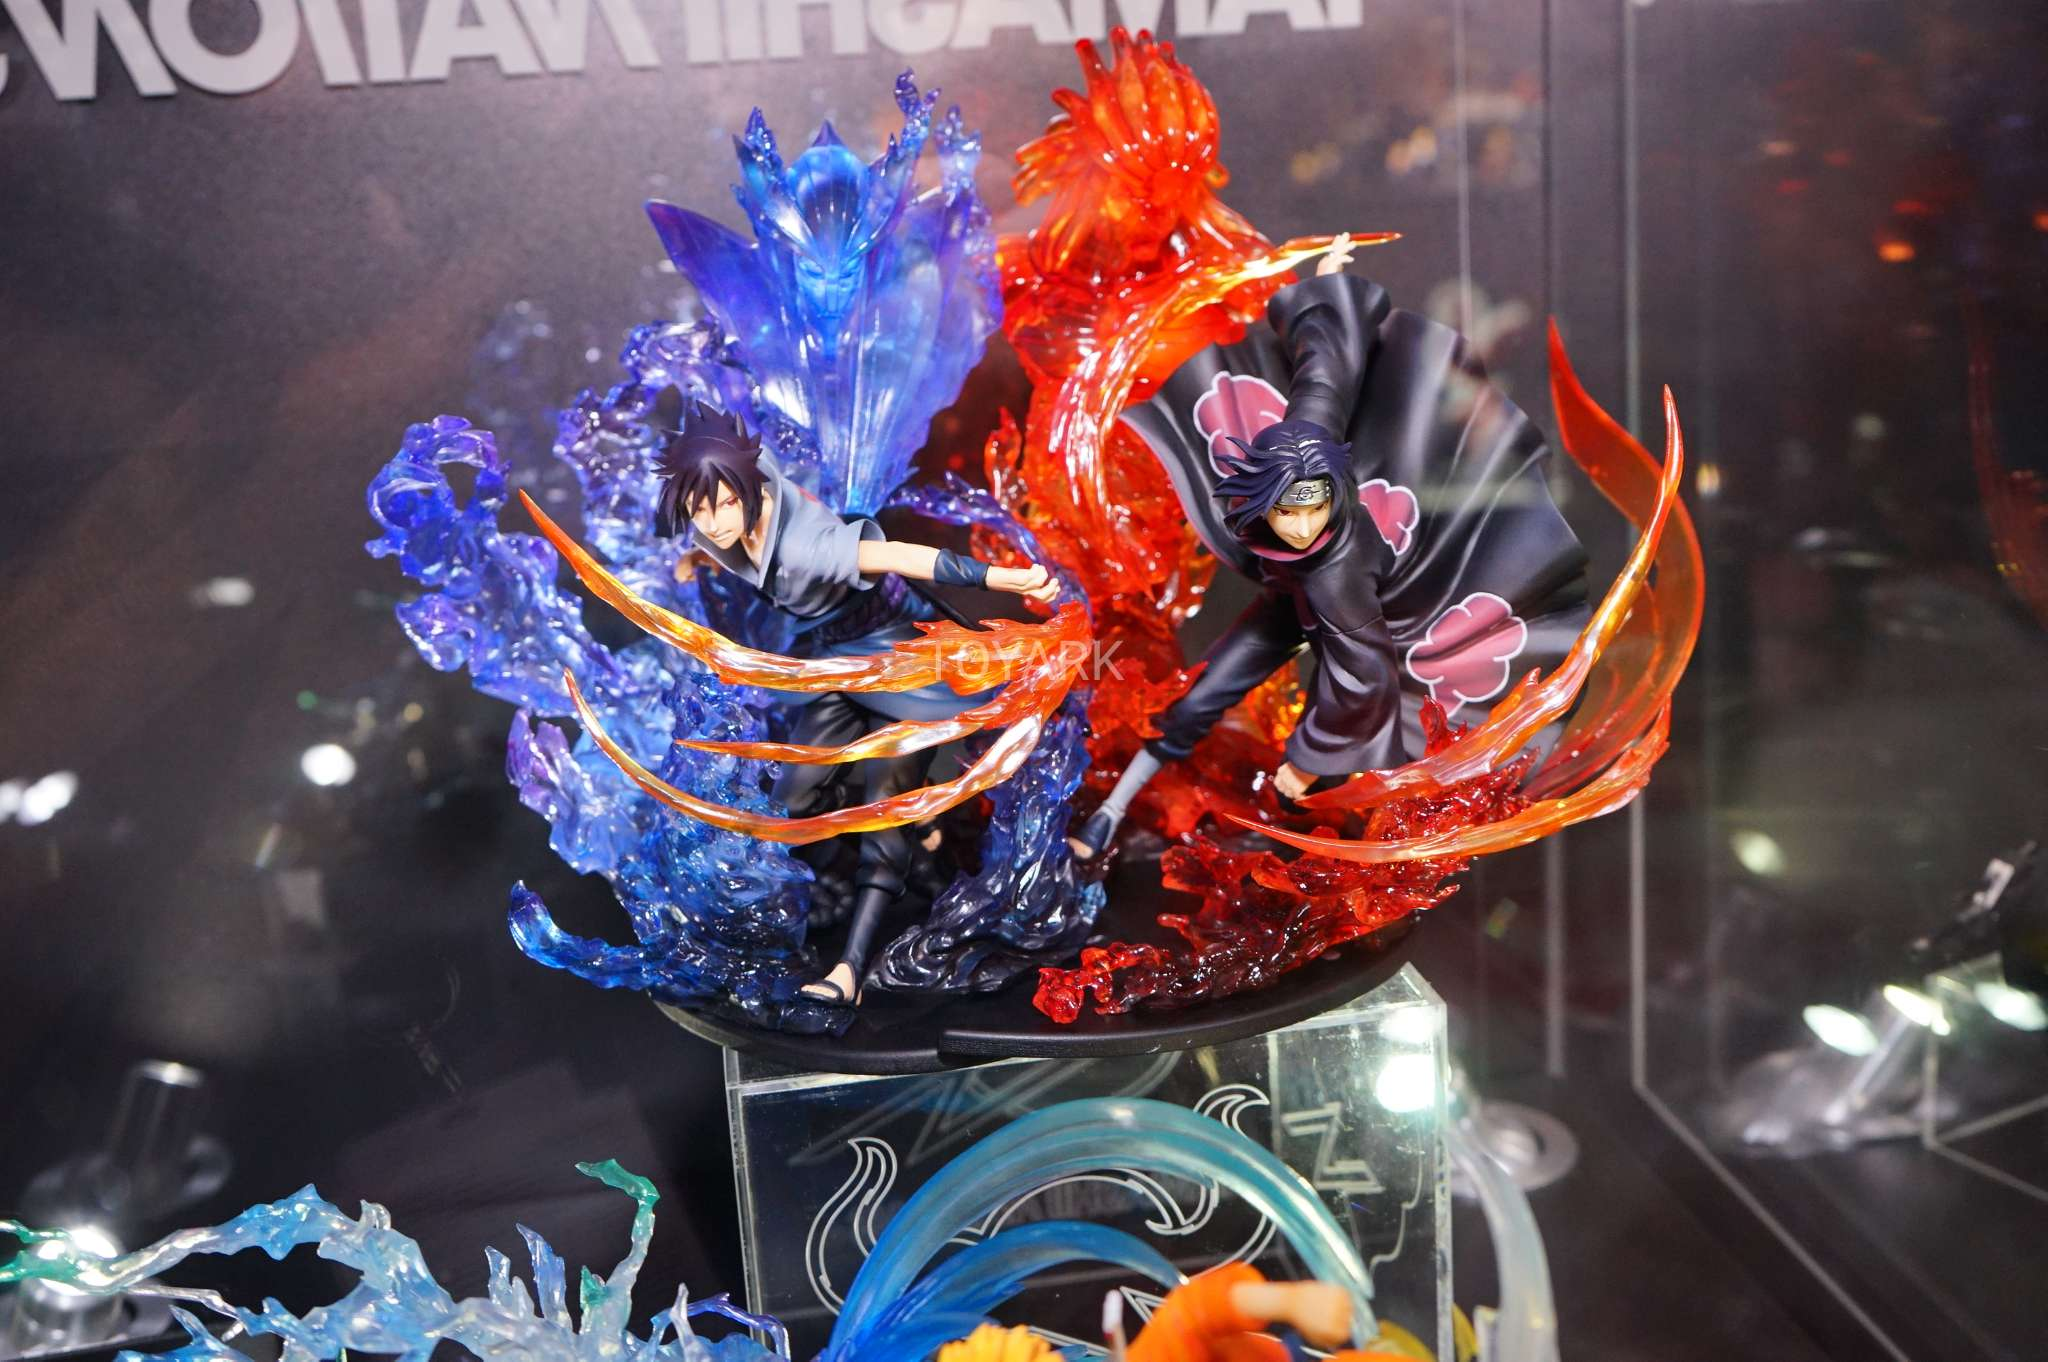 sdcc 2017 gallery tamashii nations dragon ball z and anime the